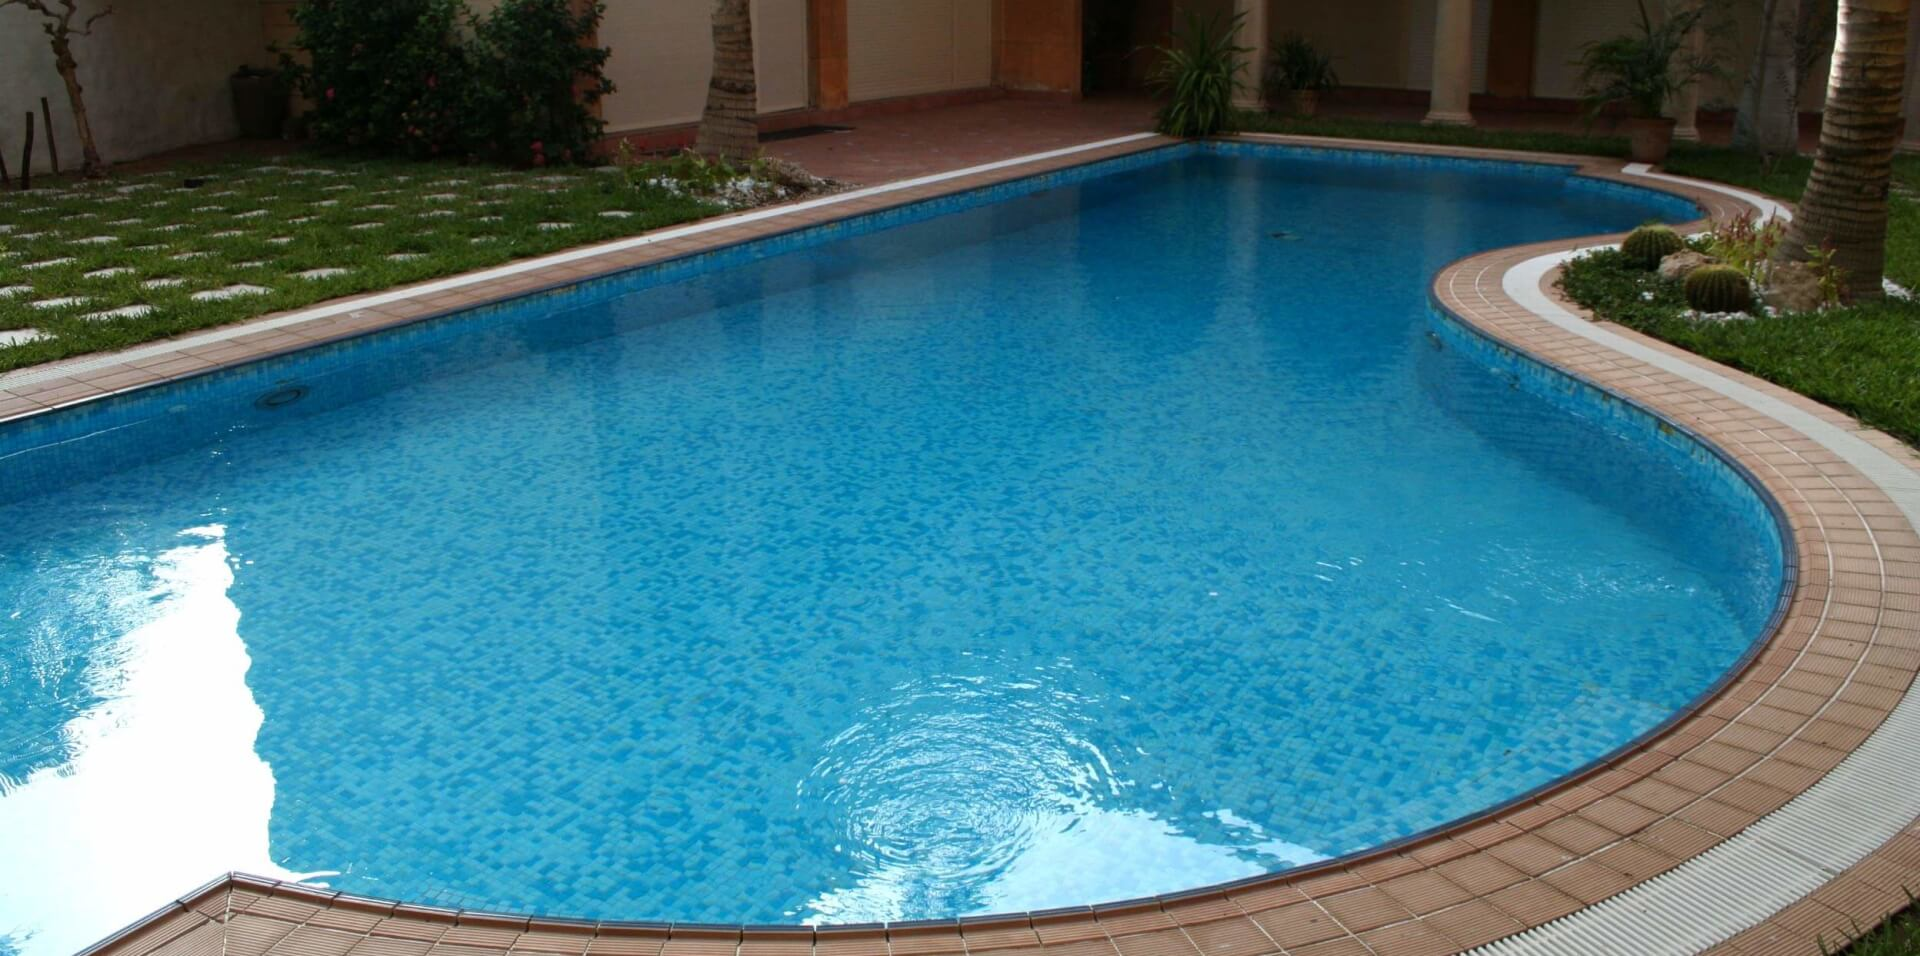 Swimming Pool Repair Company In Dallas Fort Worth